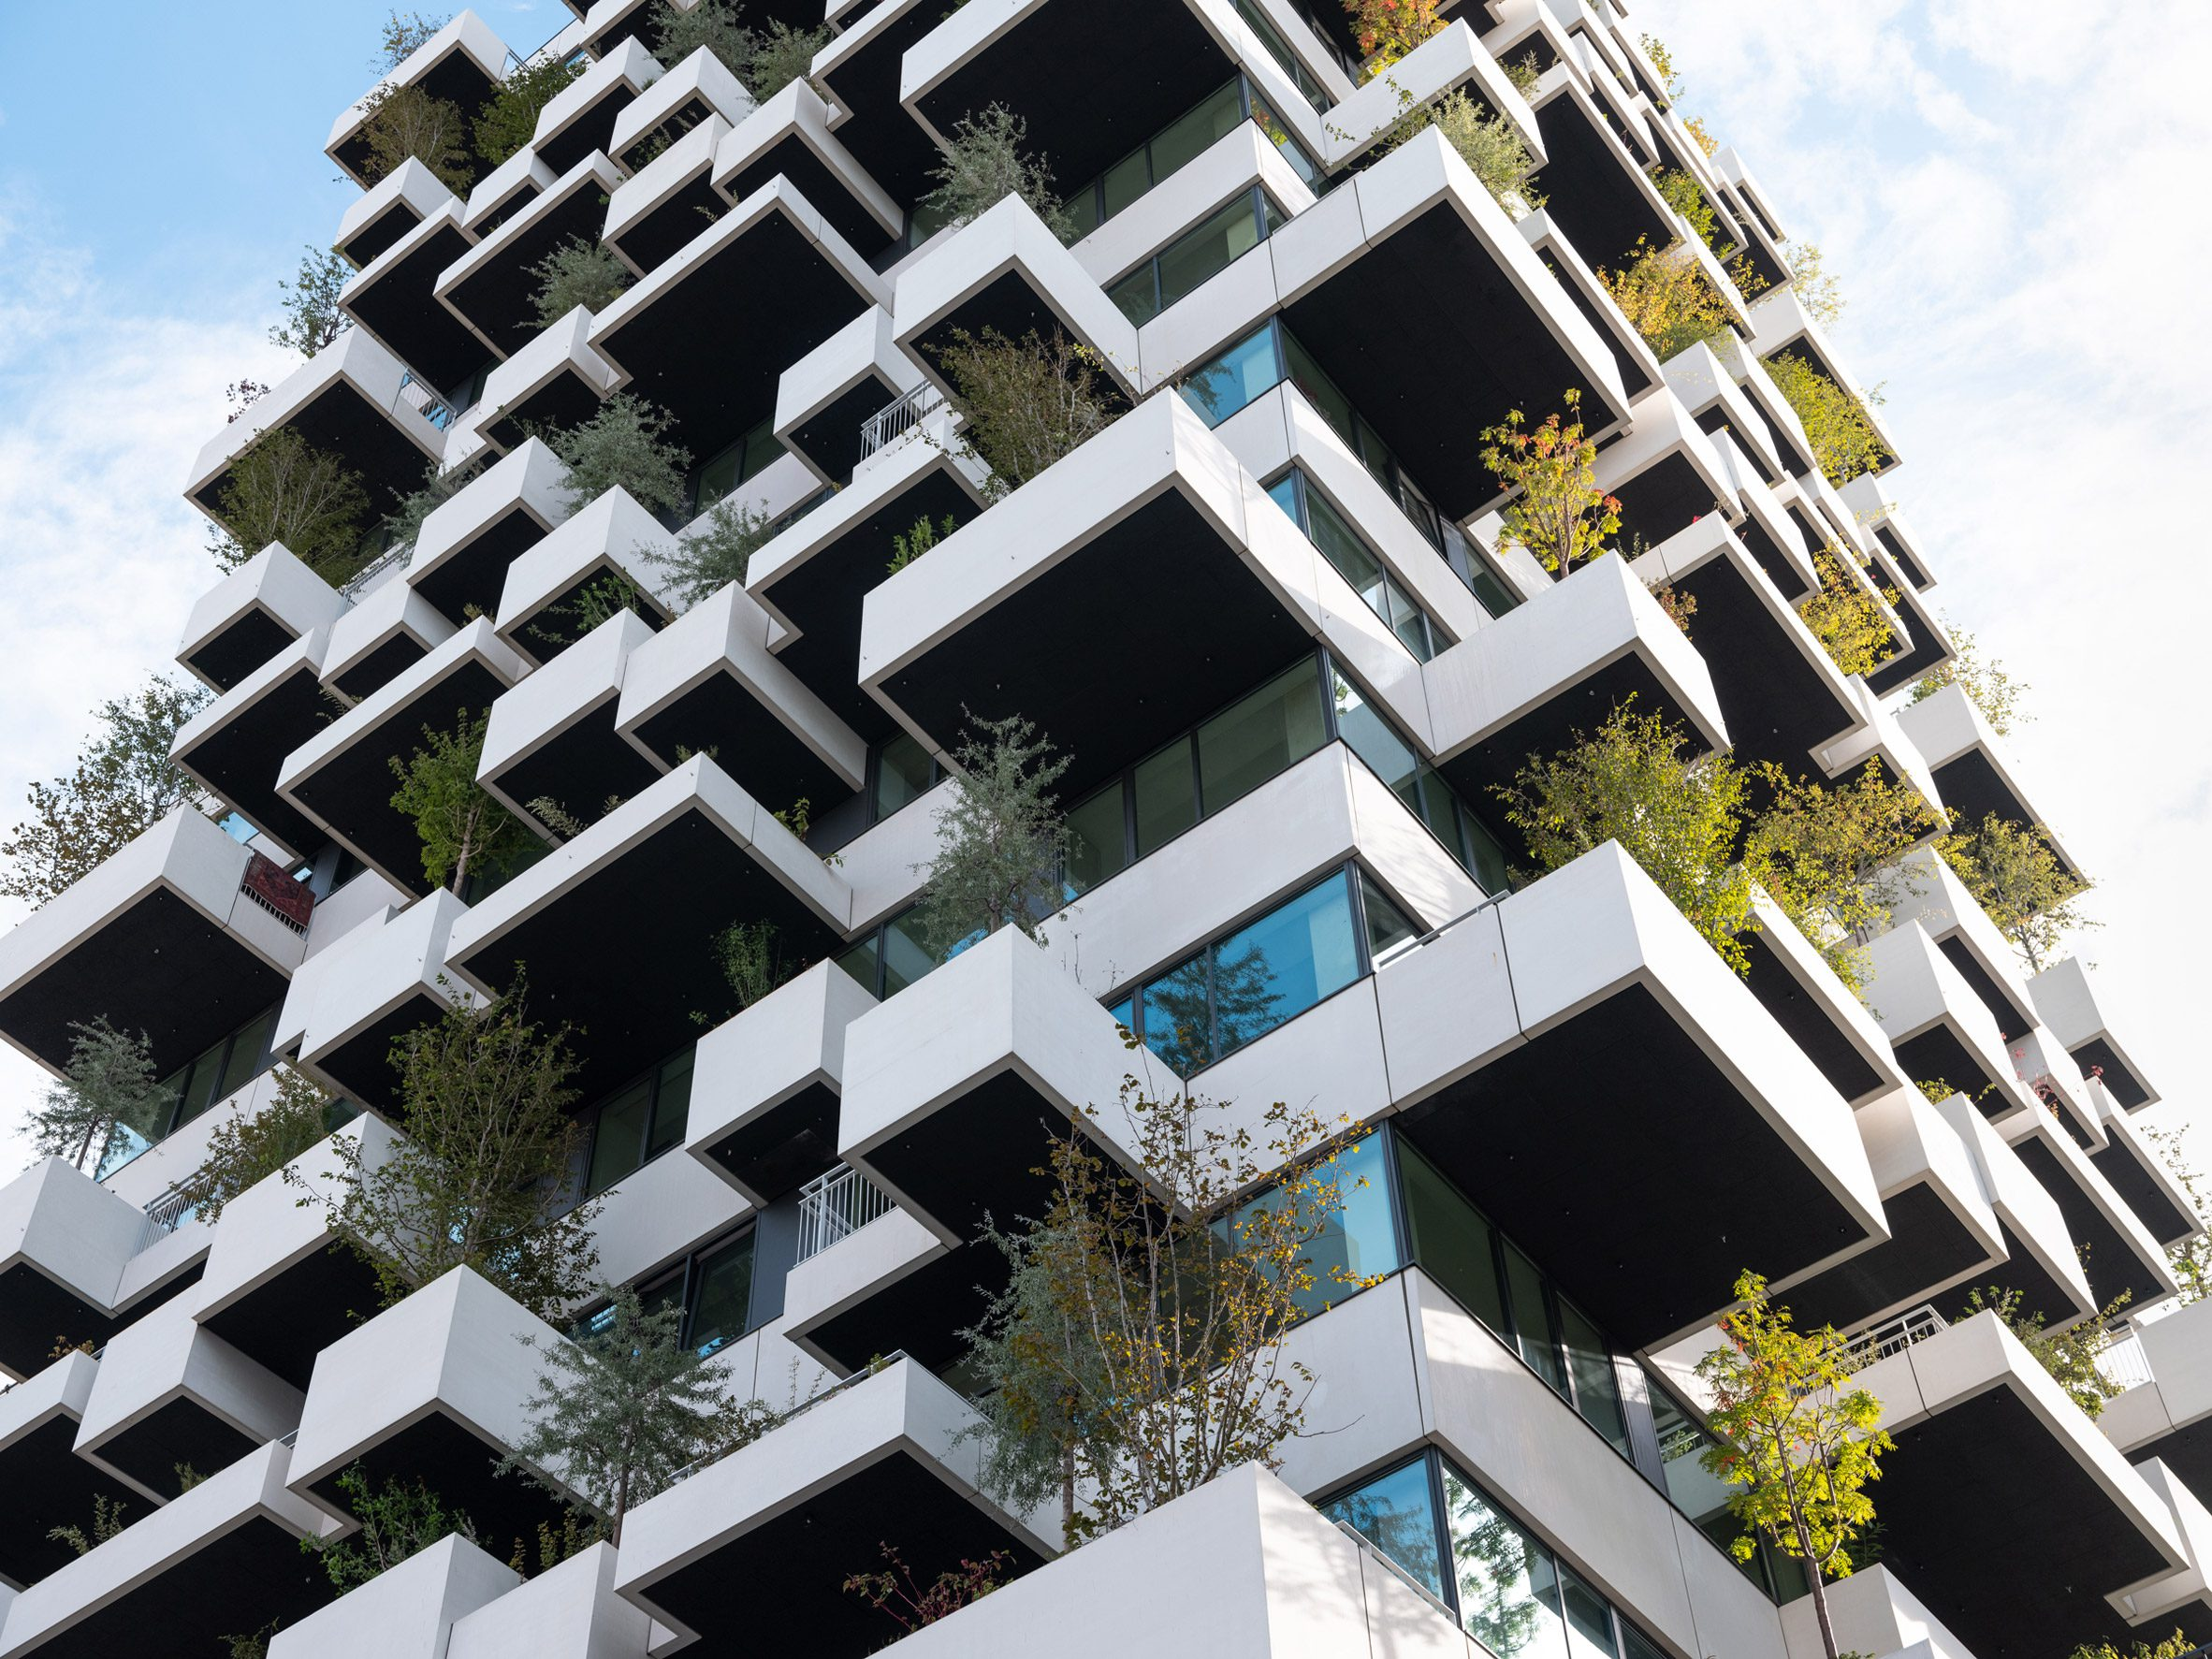 Balconies protrude from the Trudo Vertical Forest